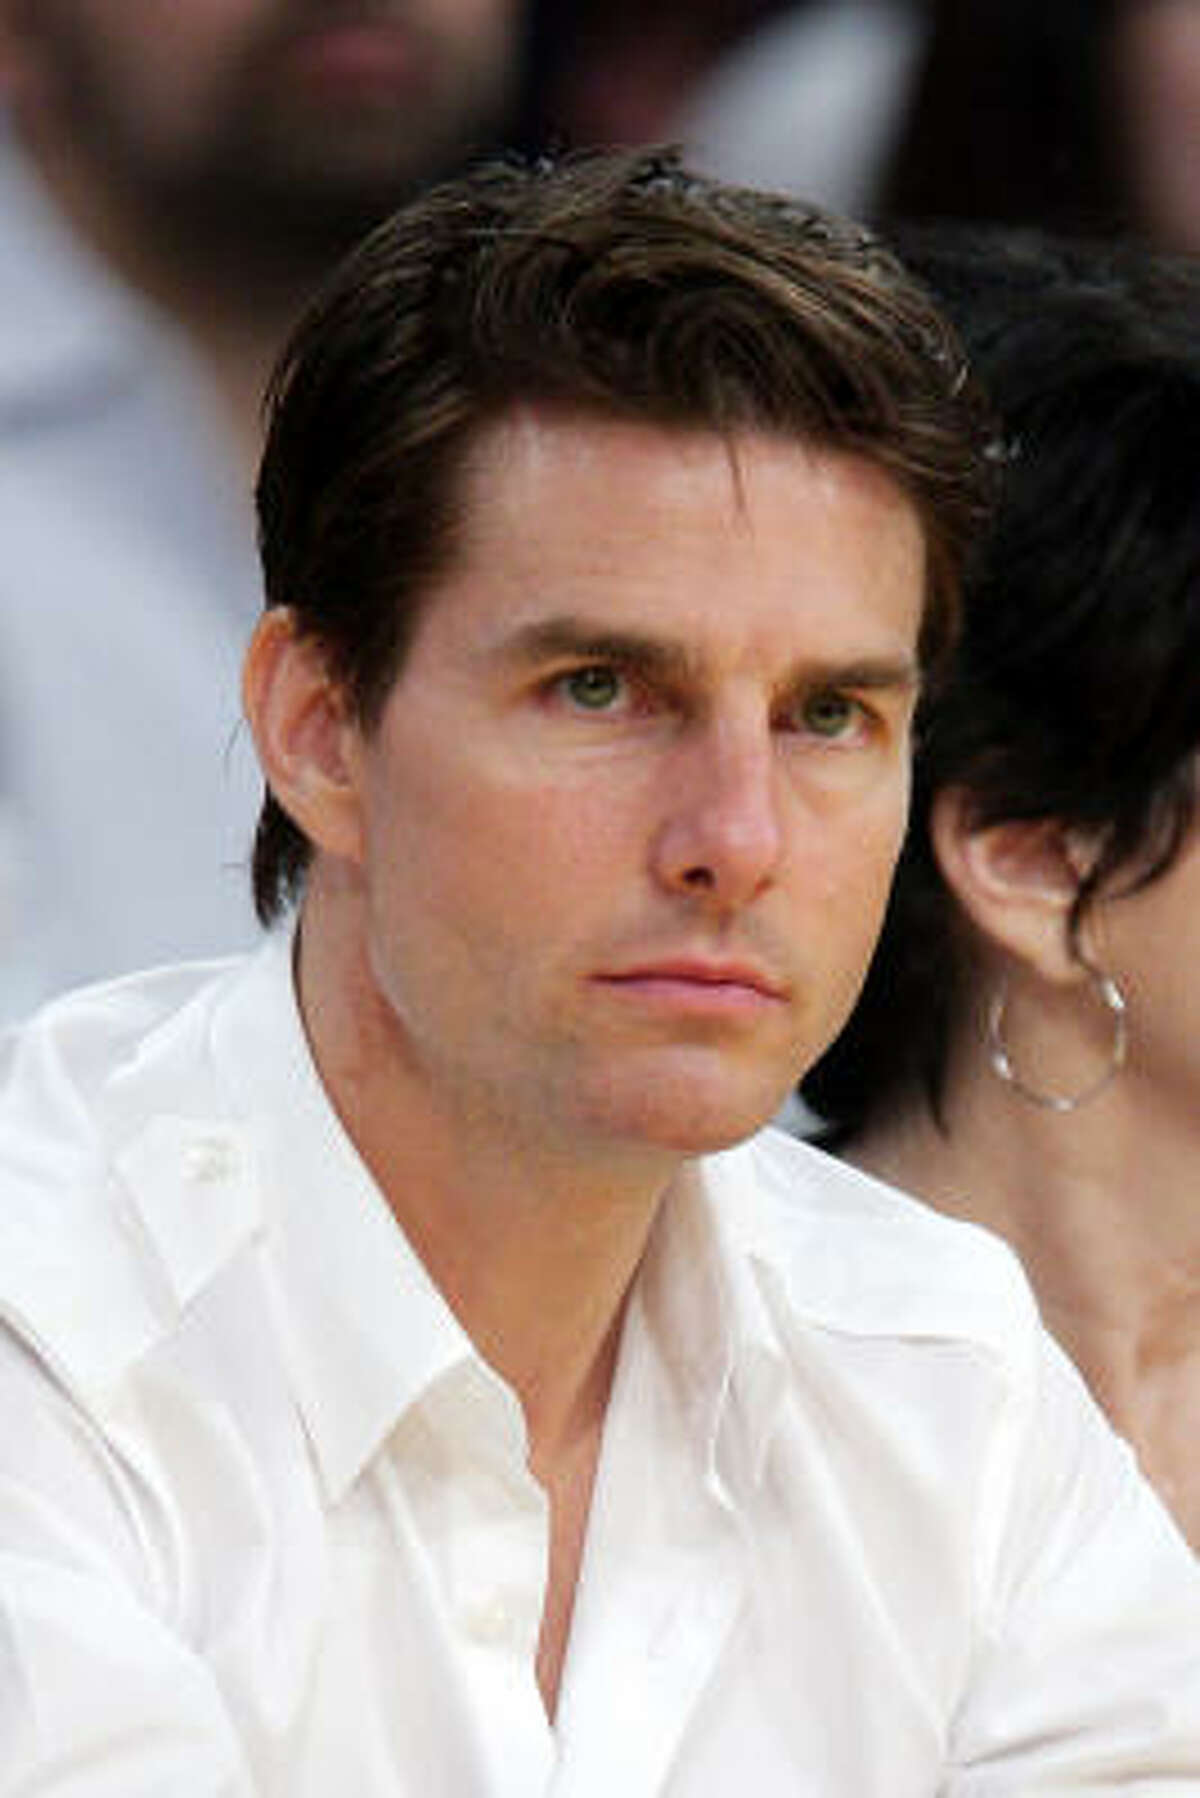 Tom Cruise has become the poster boy for Scientology. Andrew Morton, author of ``Tom Cruise: An Unauthorized Biography,'' alleges the actor ranks second in command in the Church of Scientology.